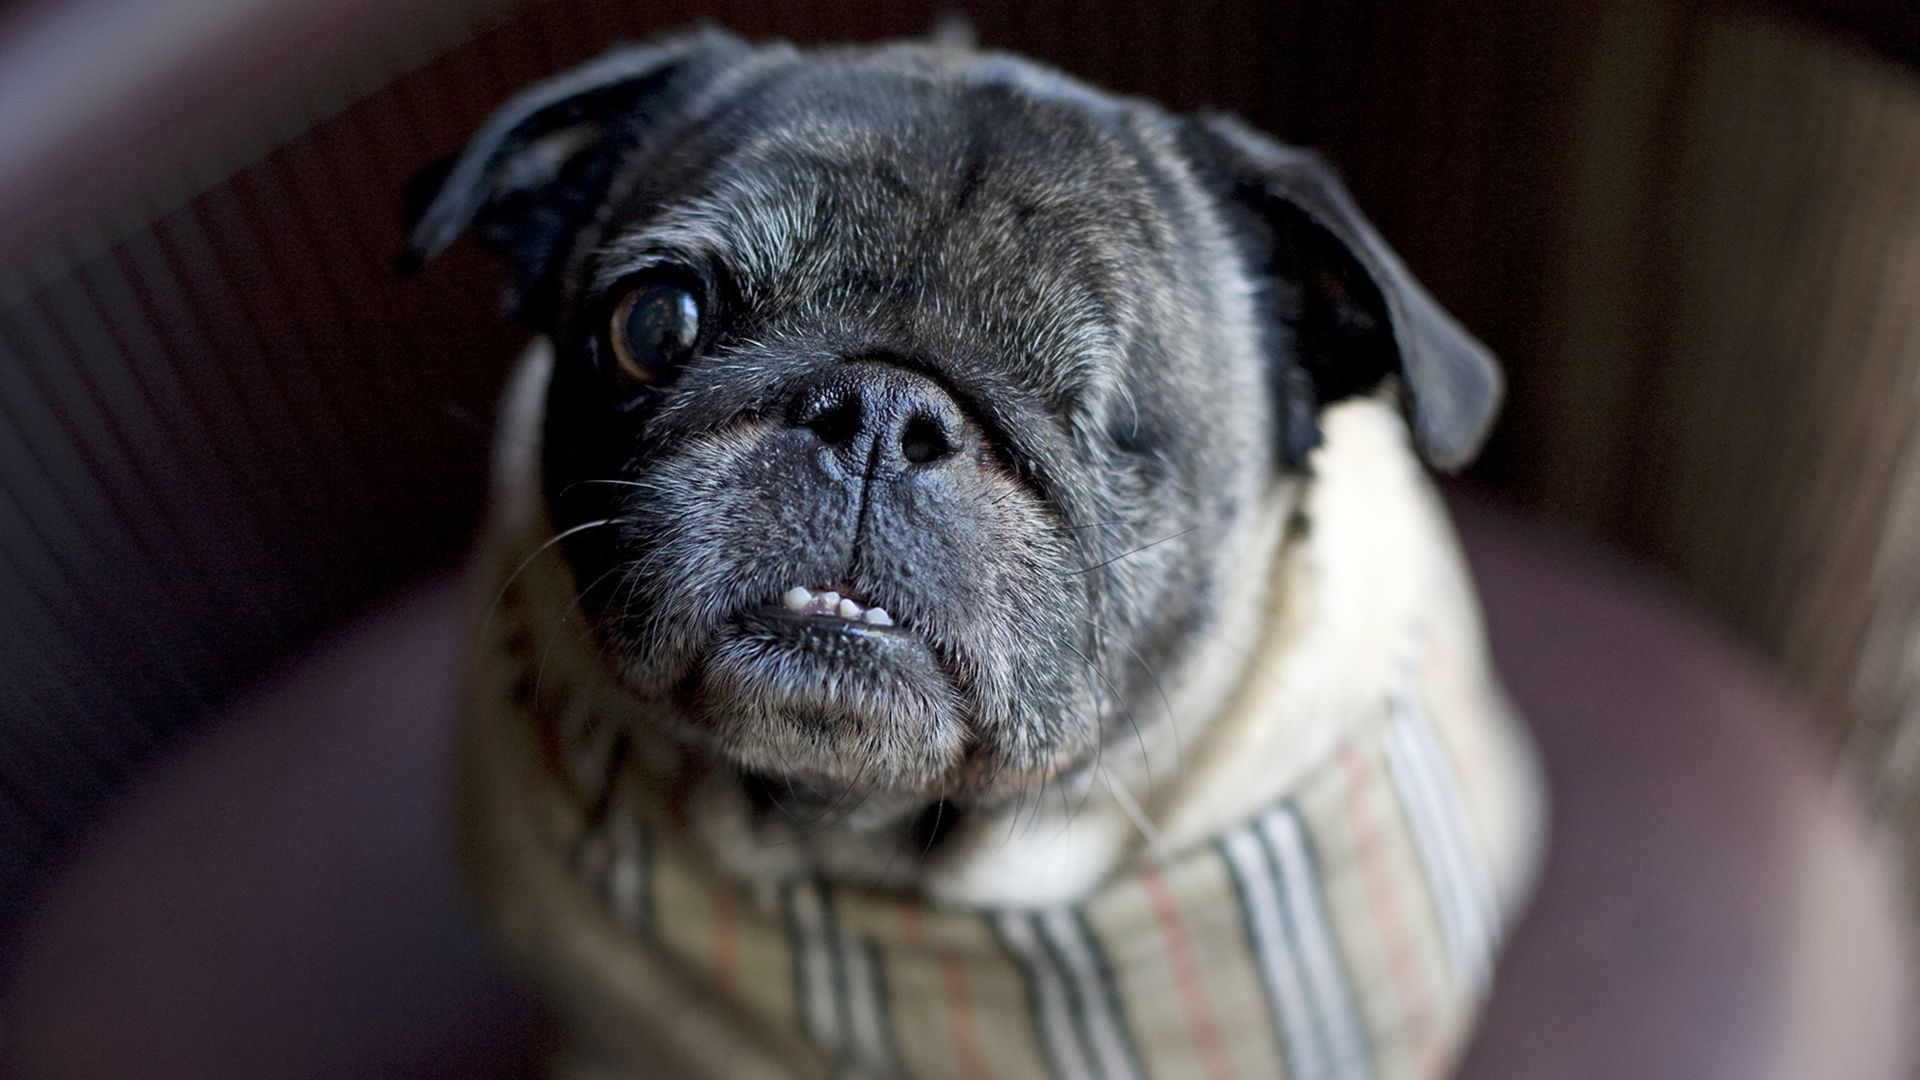 It S About Family And Purpose One Eyed Pug Finds Furever Home